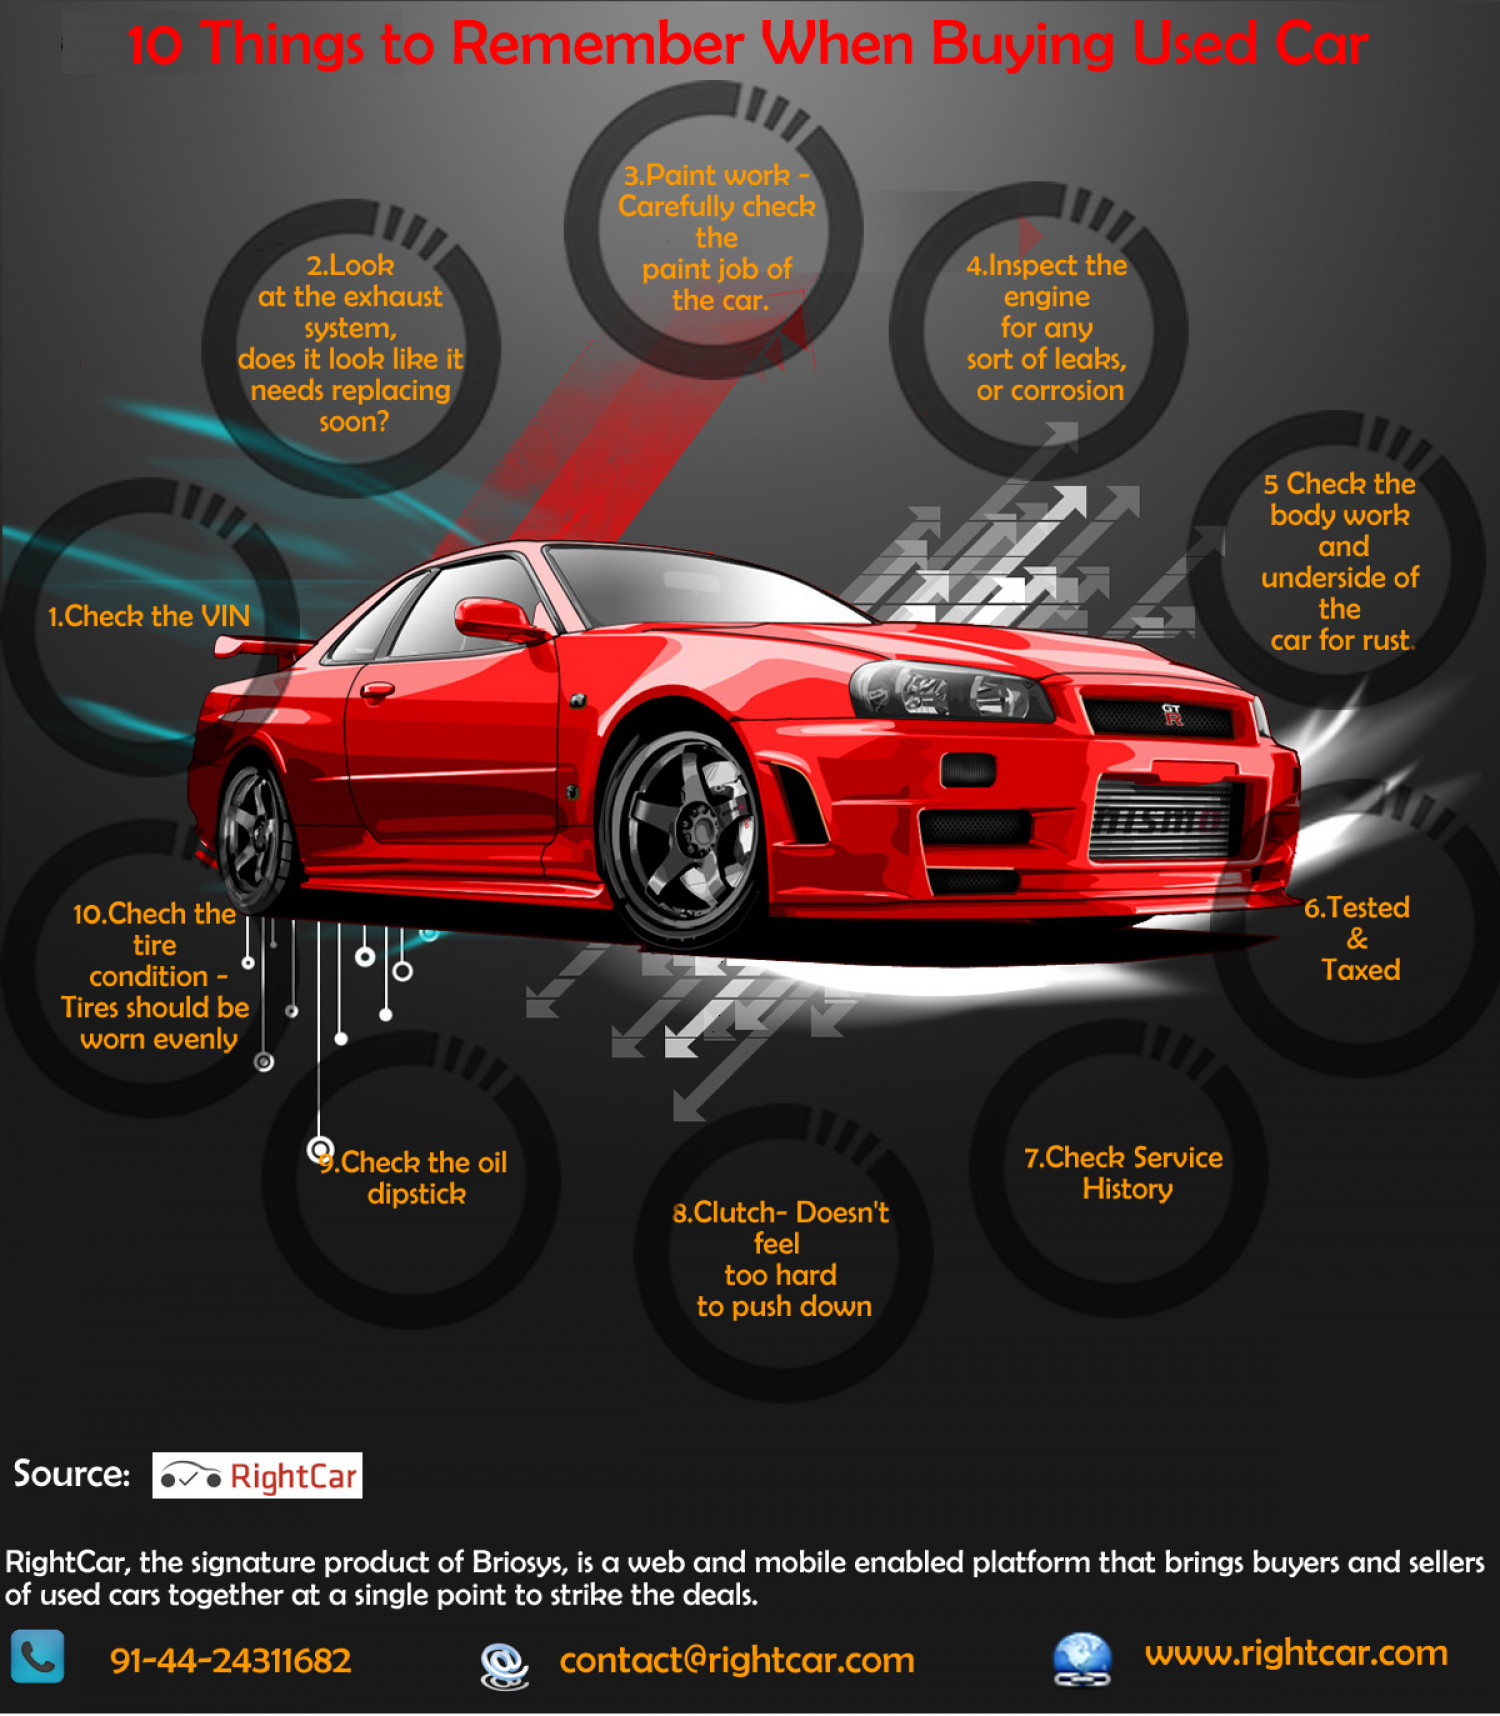 Things to Remember When Buying Used Car Infographic